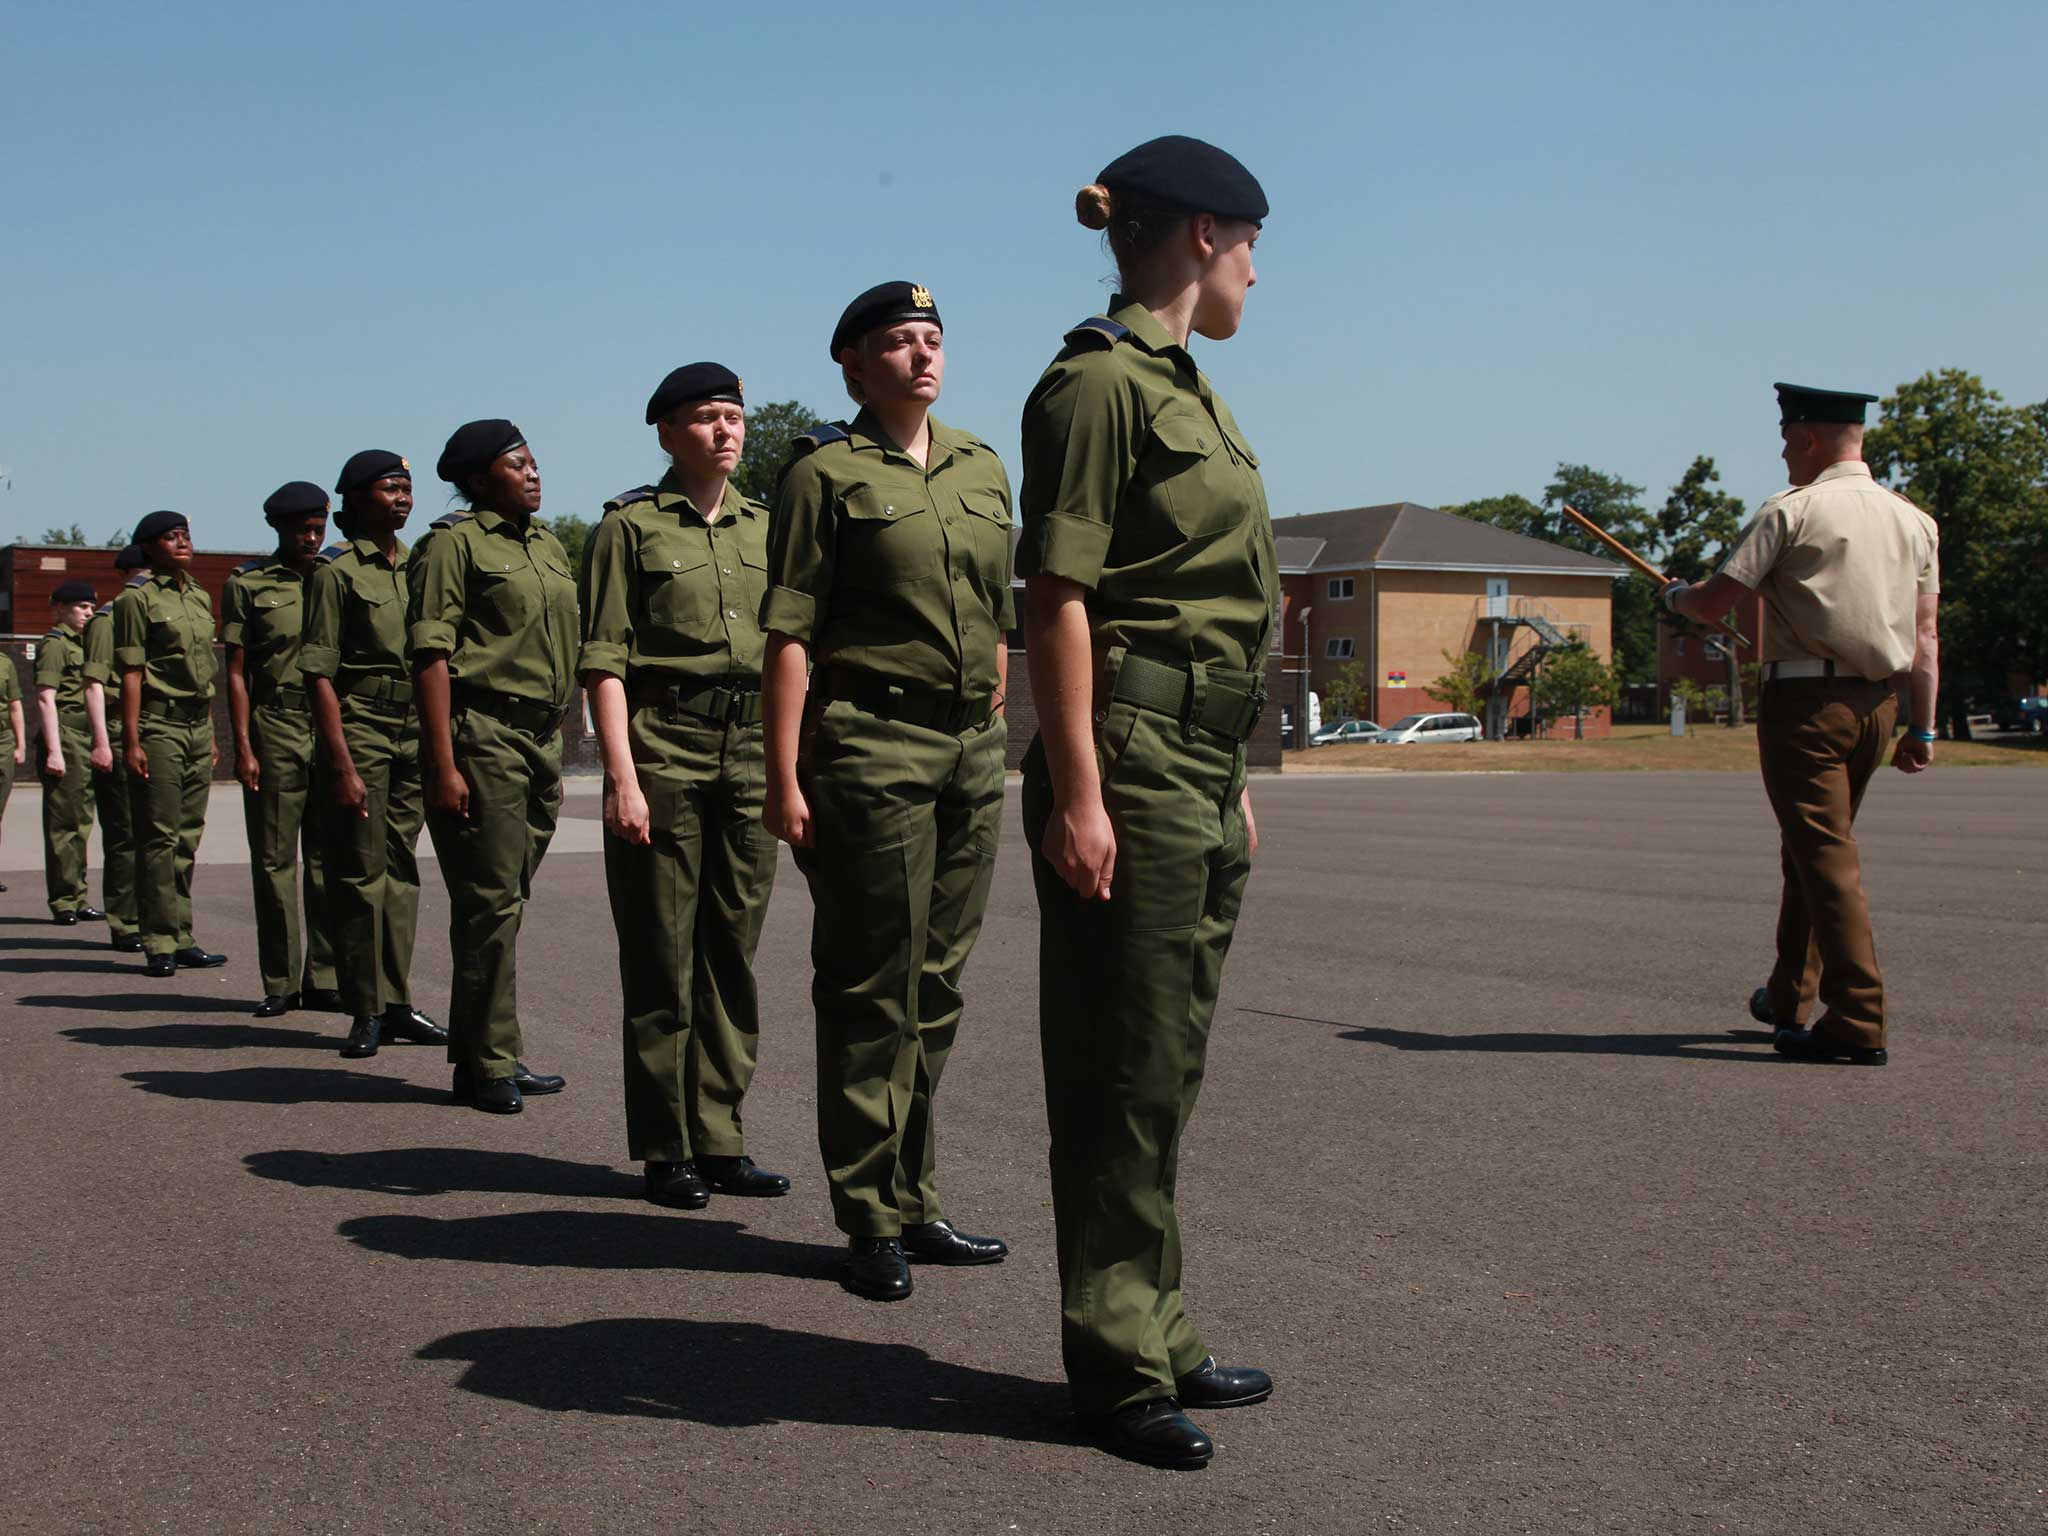 sexual harassment in the military The us army has suspended 55 soldiers serving as recruiters, drill instructors and sexual assault counselors in response to recent findings about sexual harassment in the military, a report said.